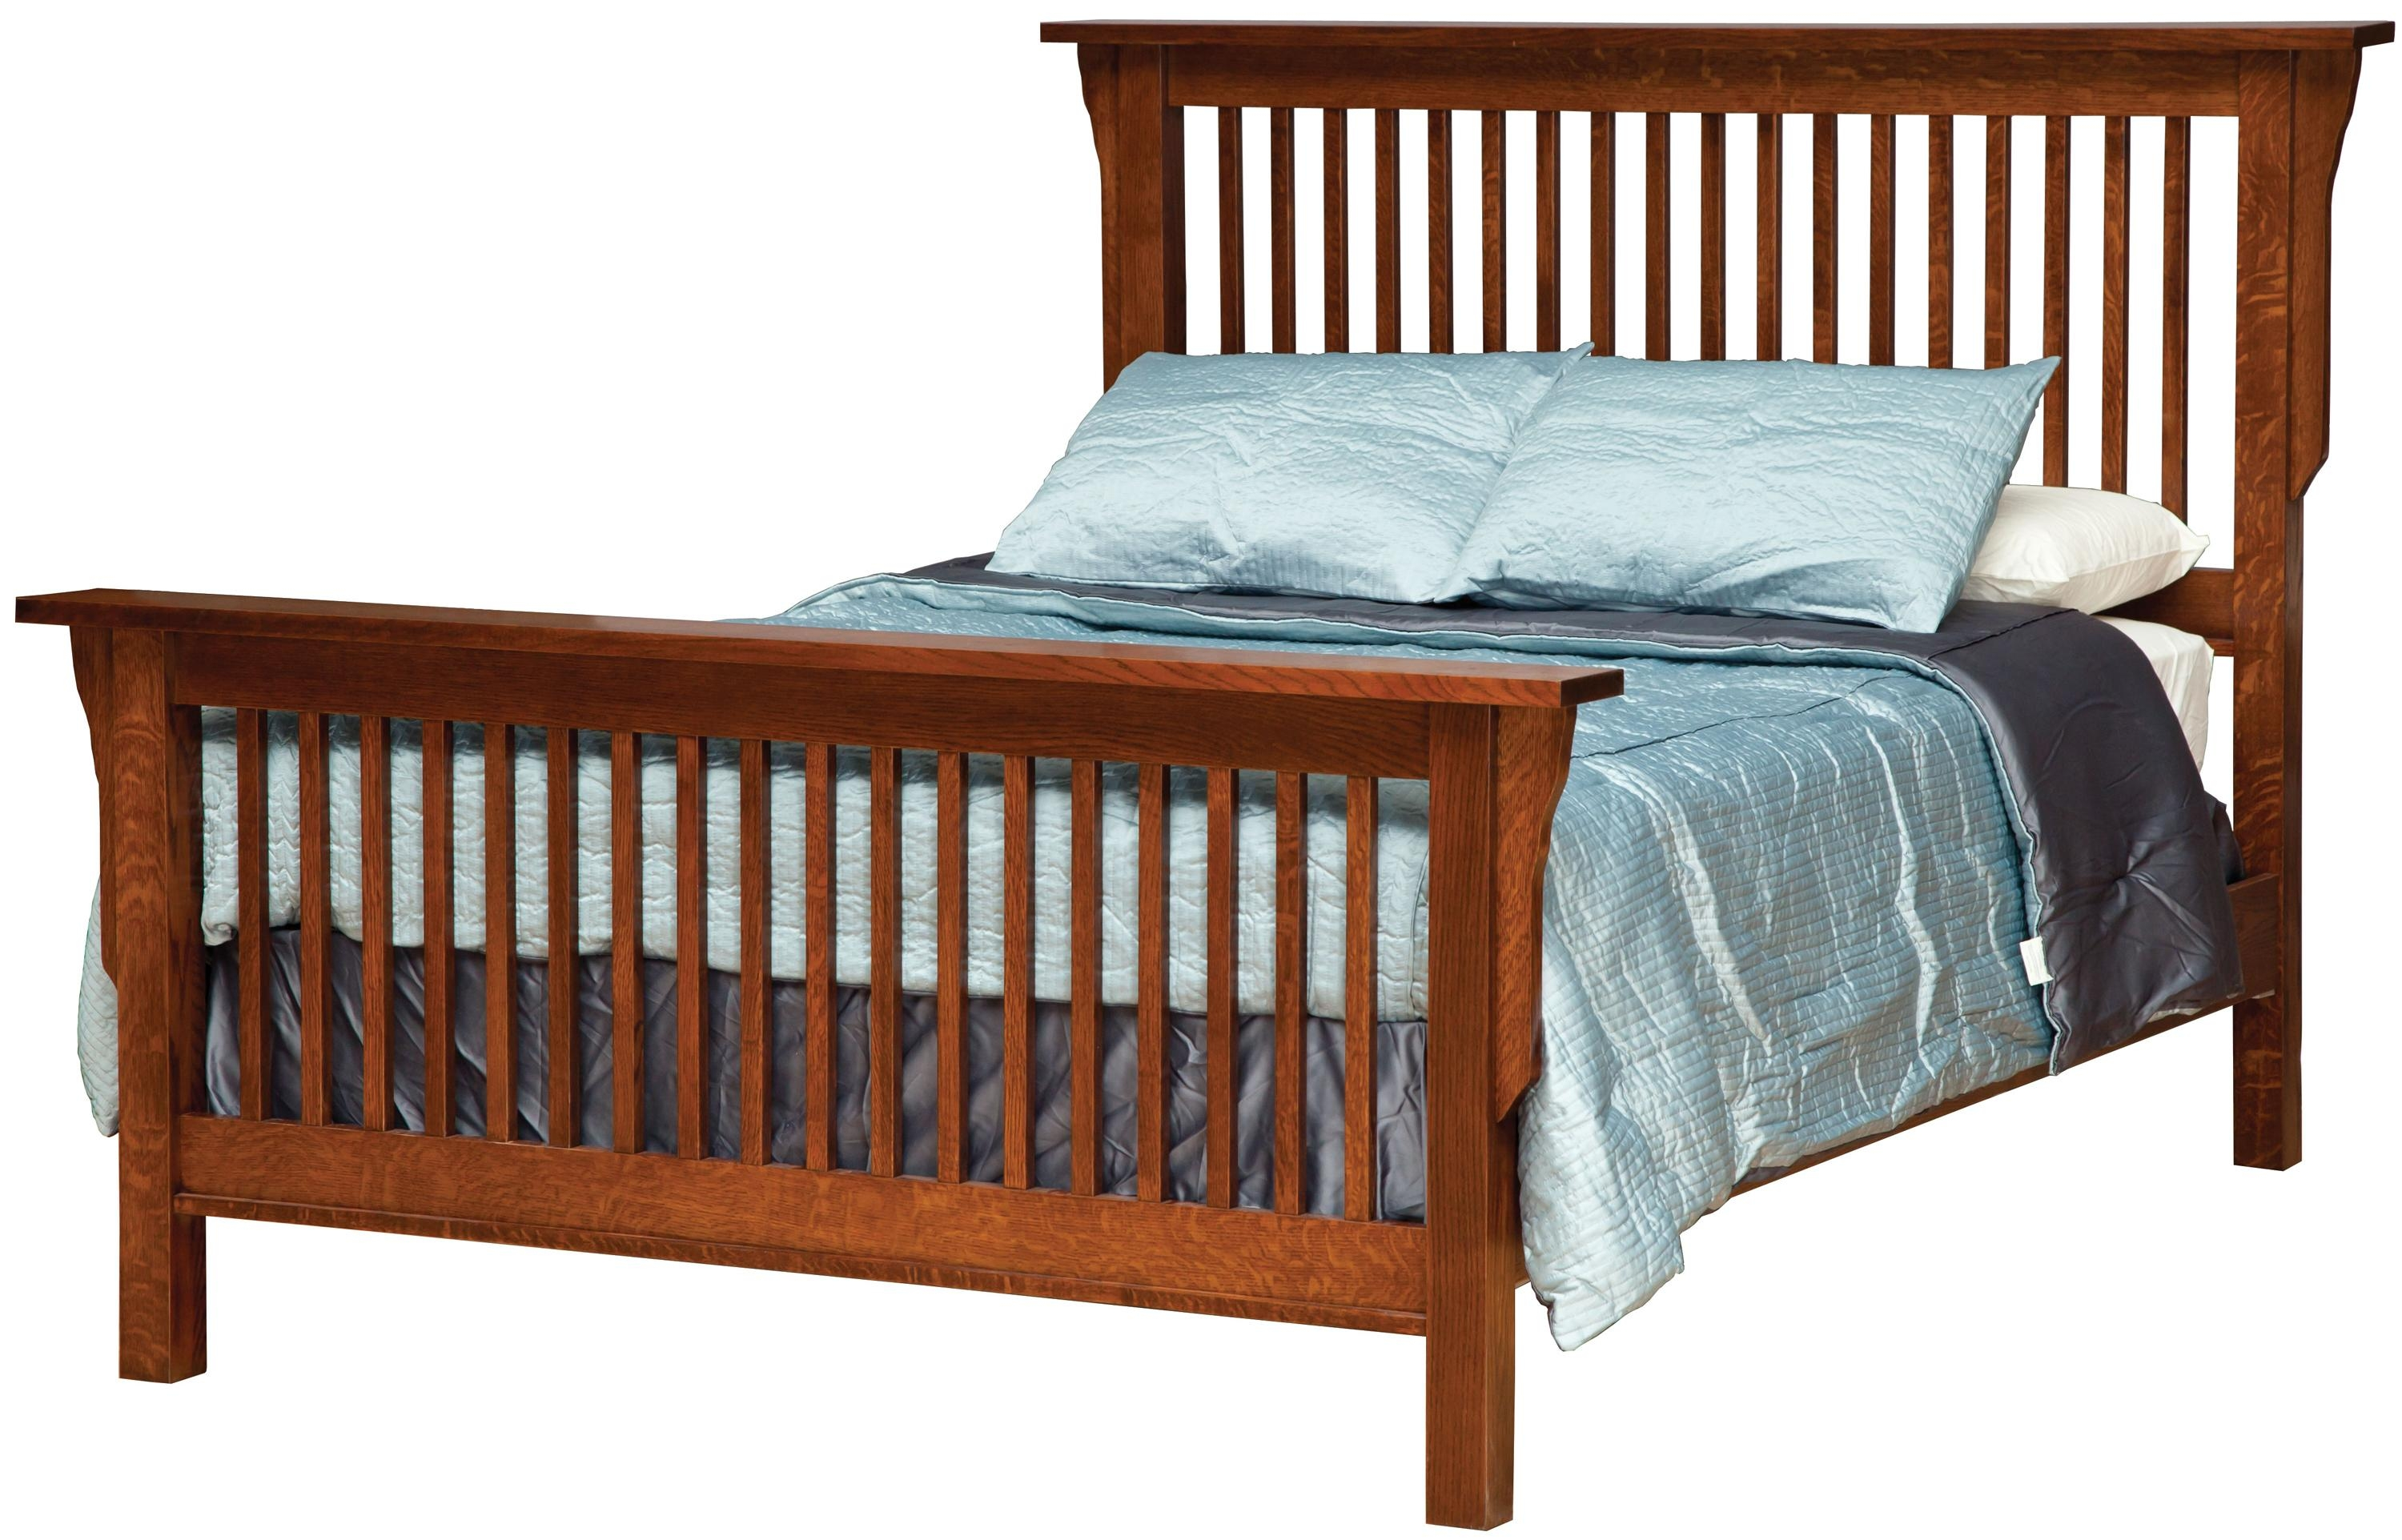 Permalink to Bed Frame For Headboards And Footboards